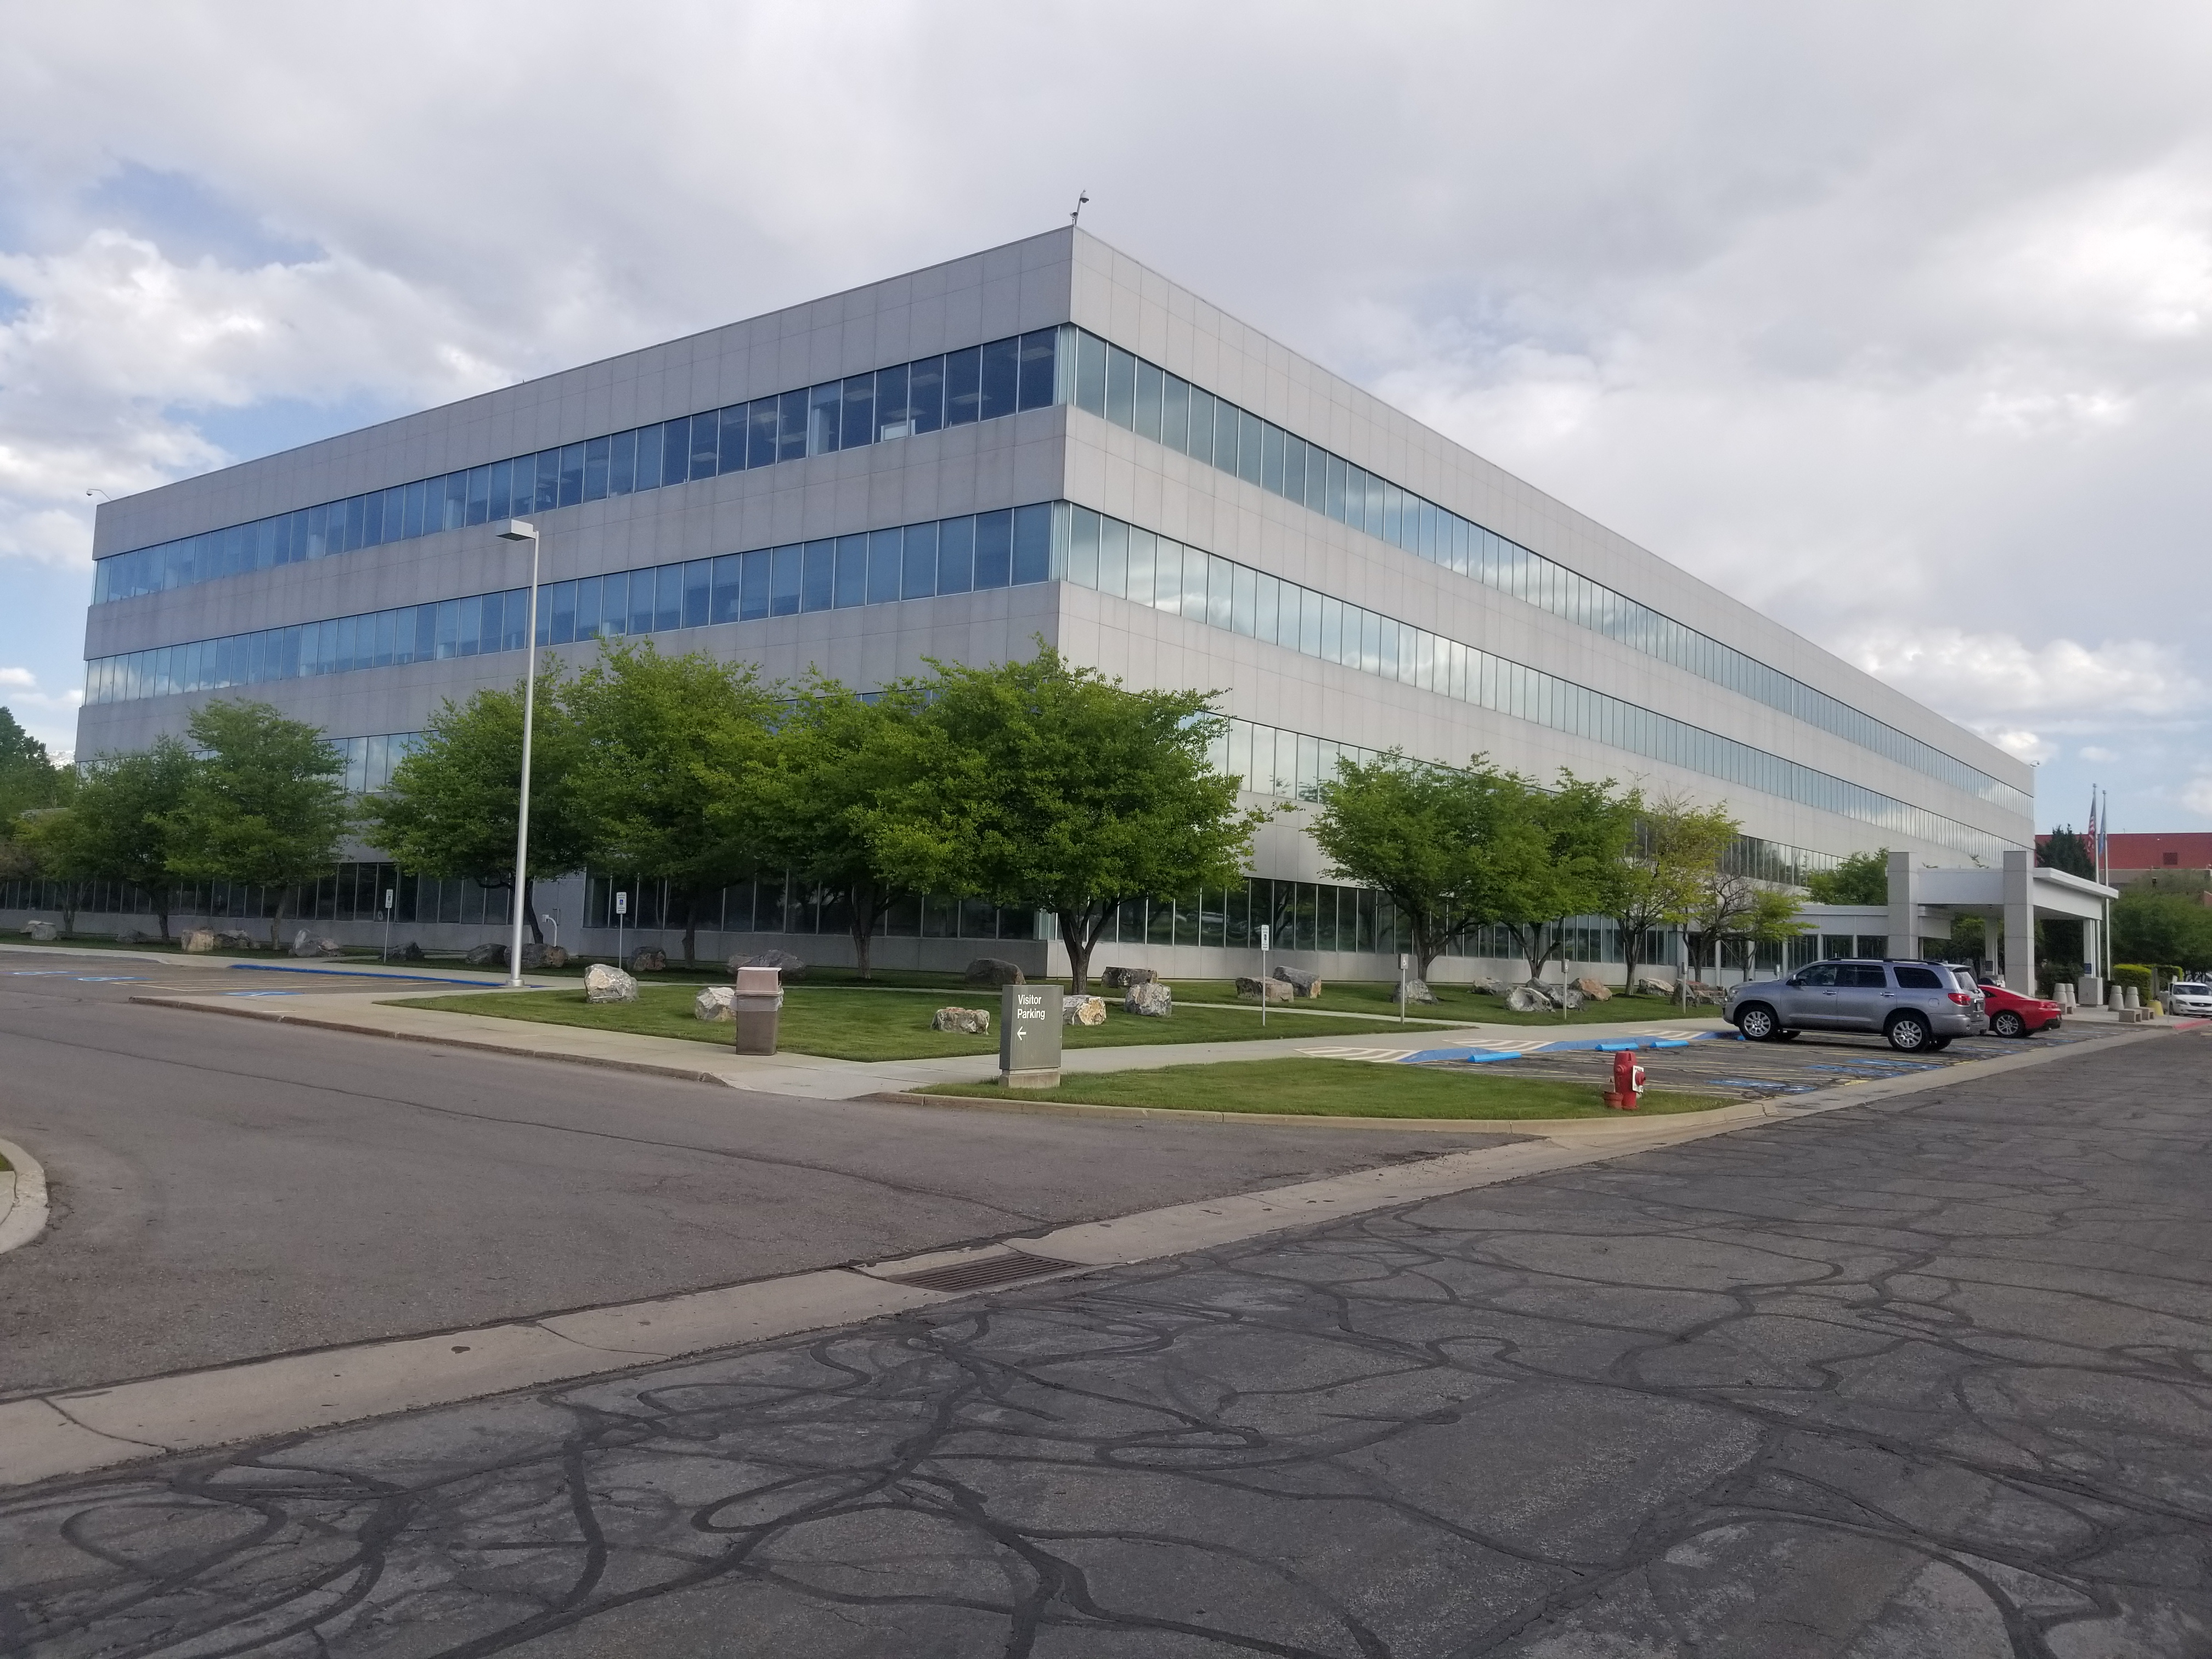 Utah leaders sign off on 'sweet deal,' approve spending $56M to buy American Express buildings for state offices